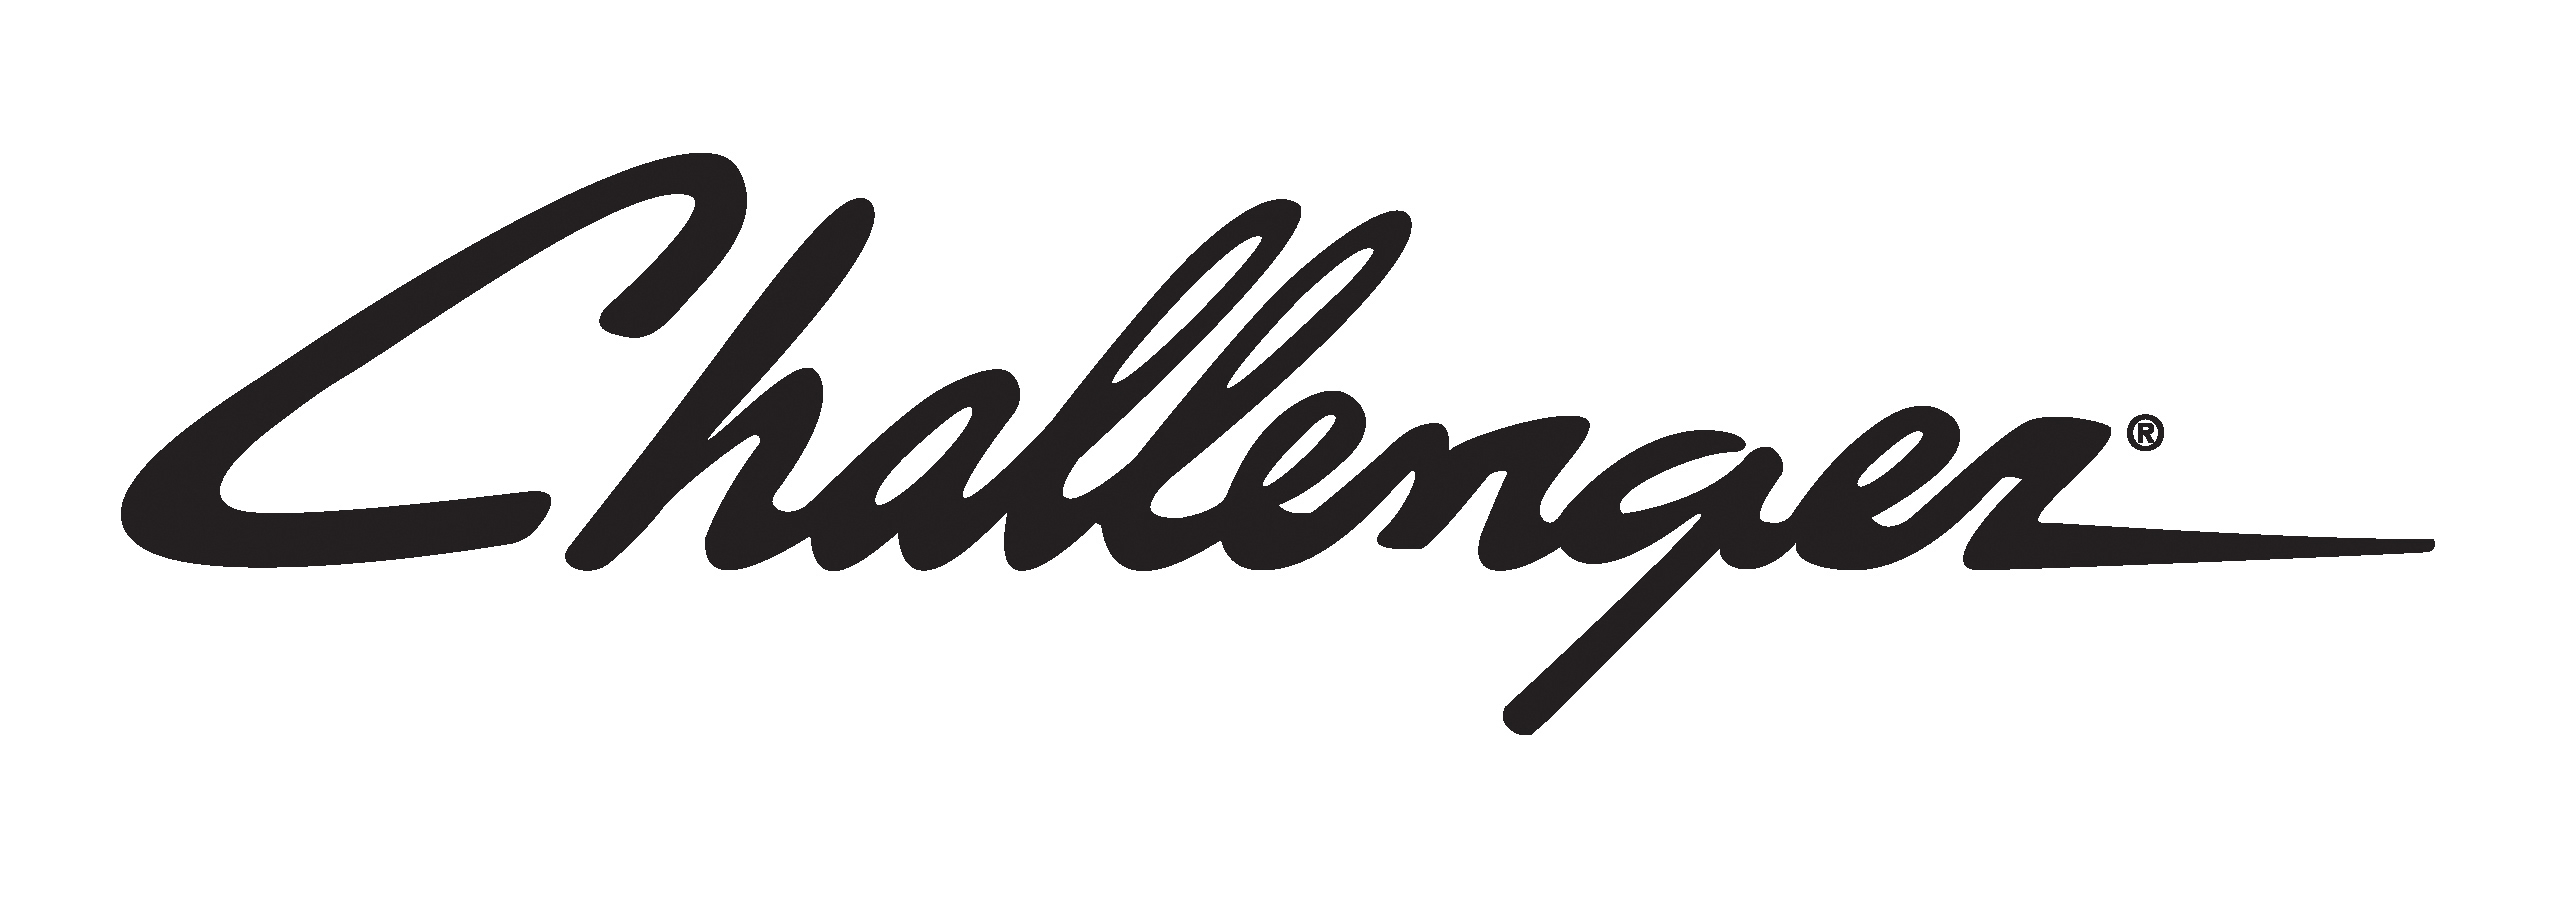 Productos Challenger width=